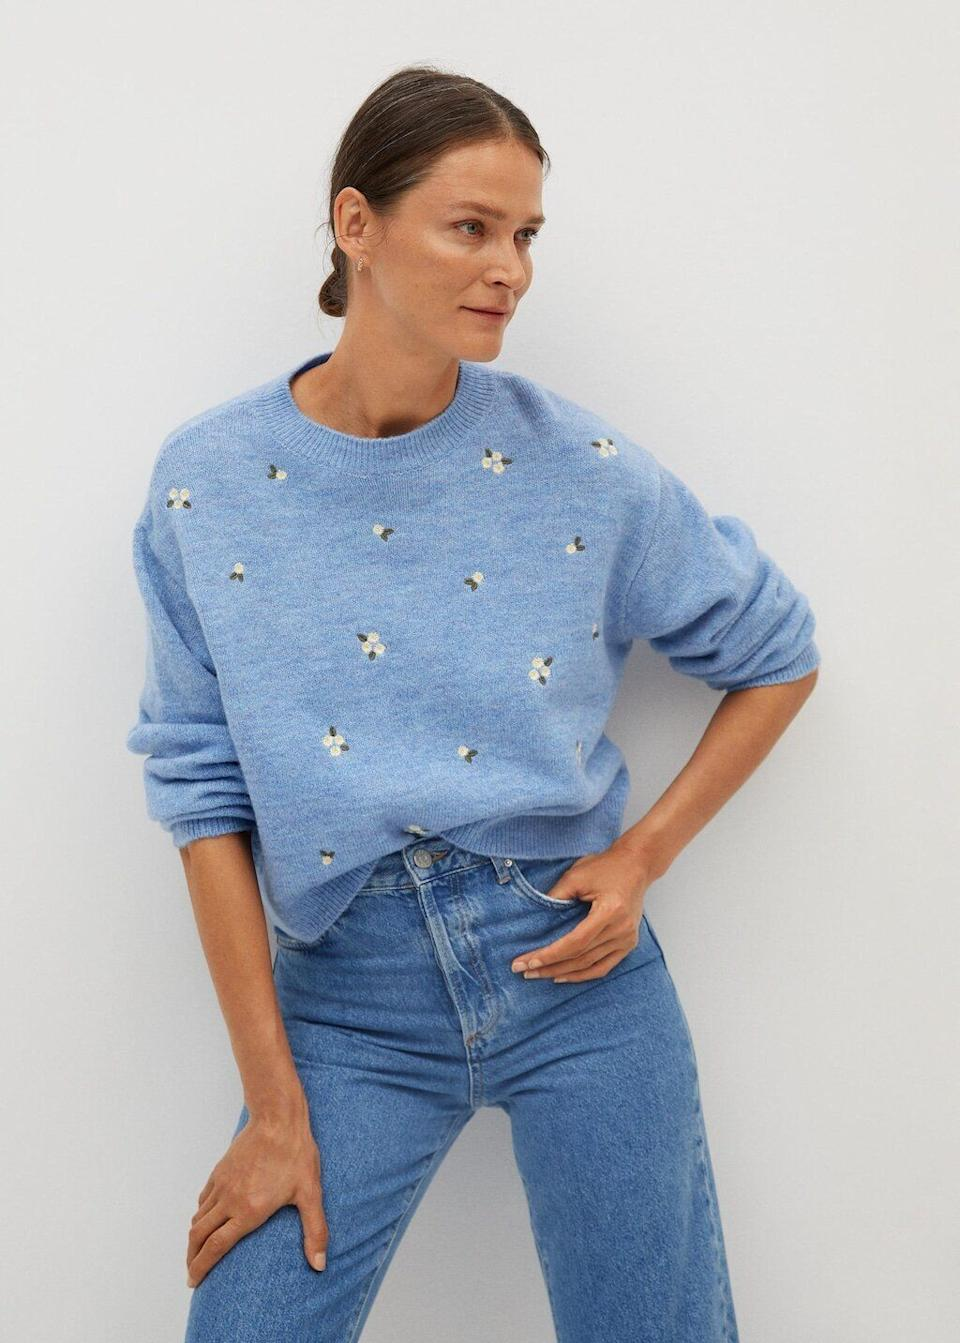 "<a href=""https://fave.co/3kDW6KS"" target=""_blank"" rel=""noopener noreferrer"">This embroidered sweater</a> is available in sizes XS to XL in two colors. Find it for $60 at <a href=""https://fave.co/3kDW6KS"" target=""_blank"" rel=""noopener noreferrer"">Mango</a>."